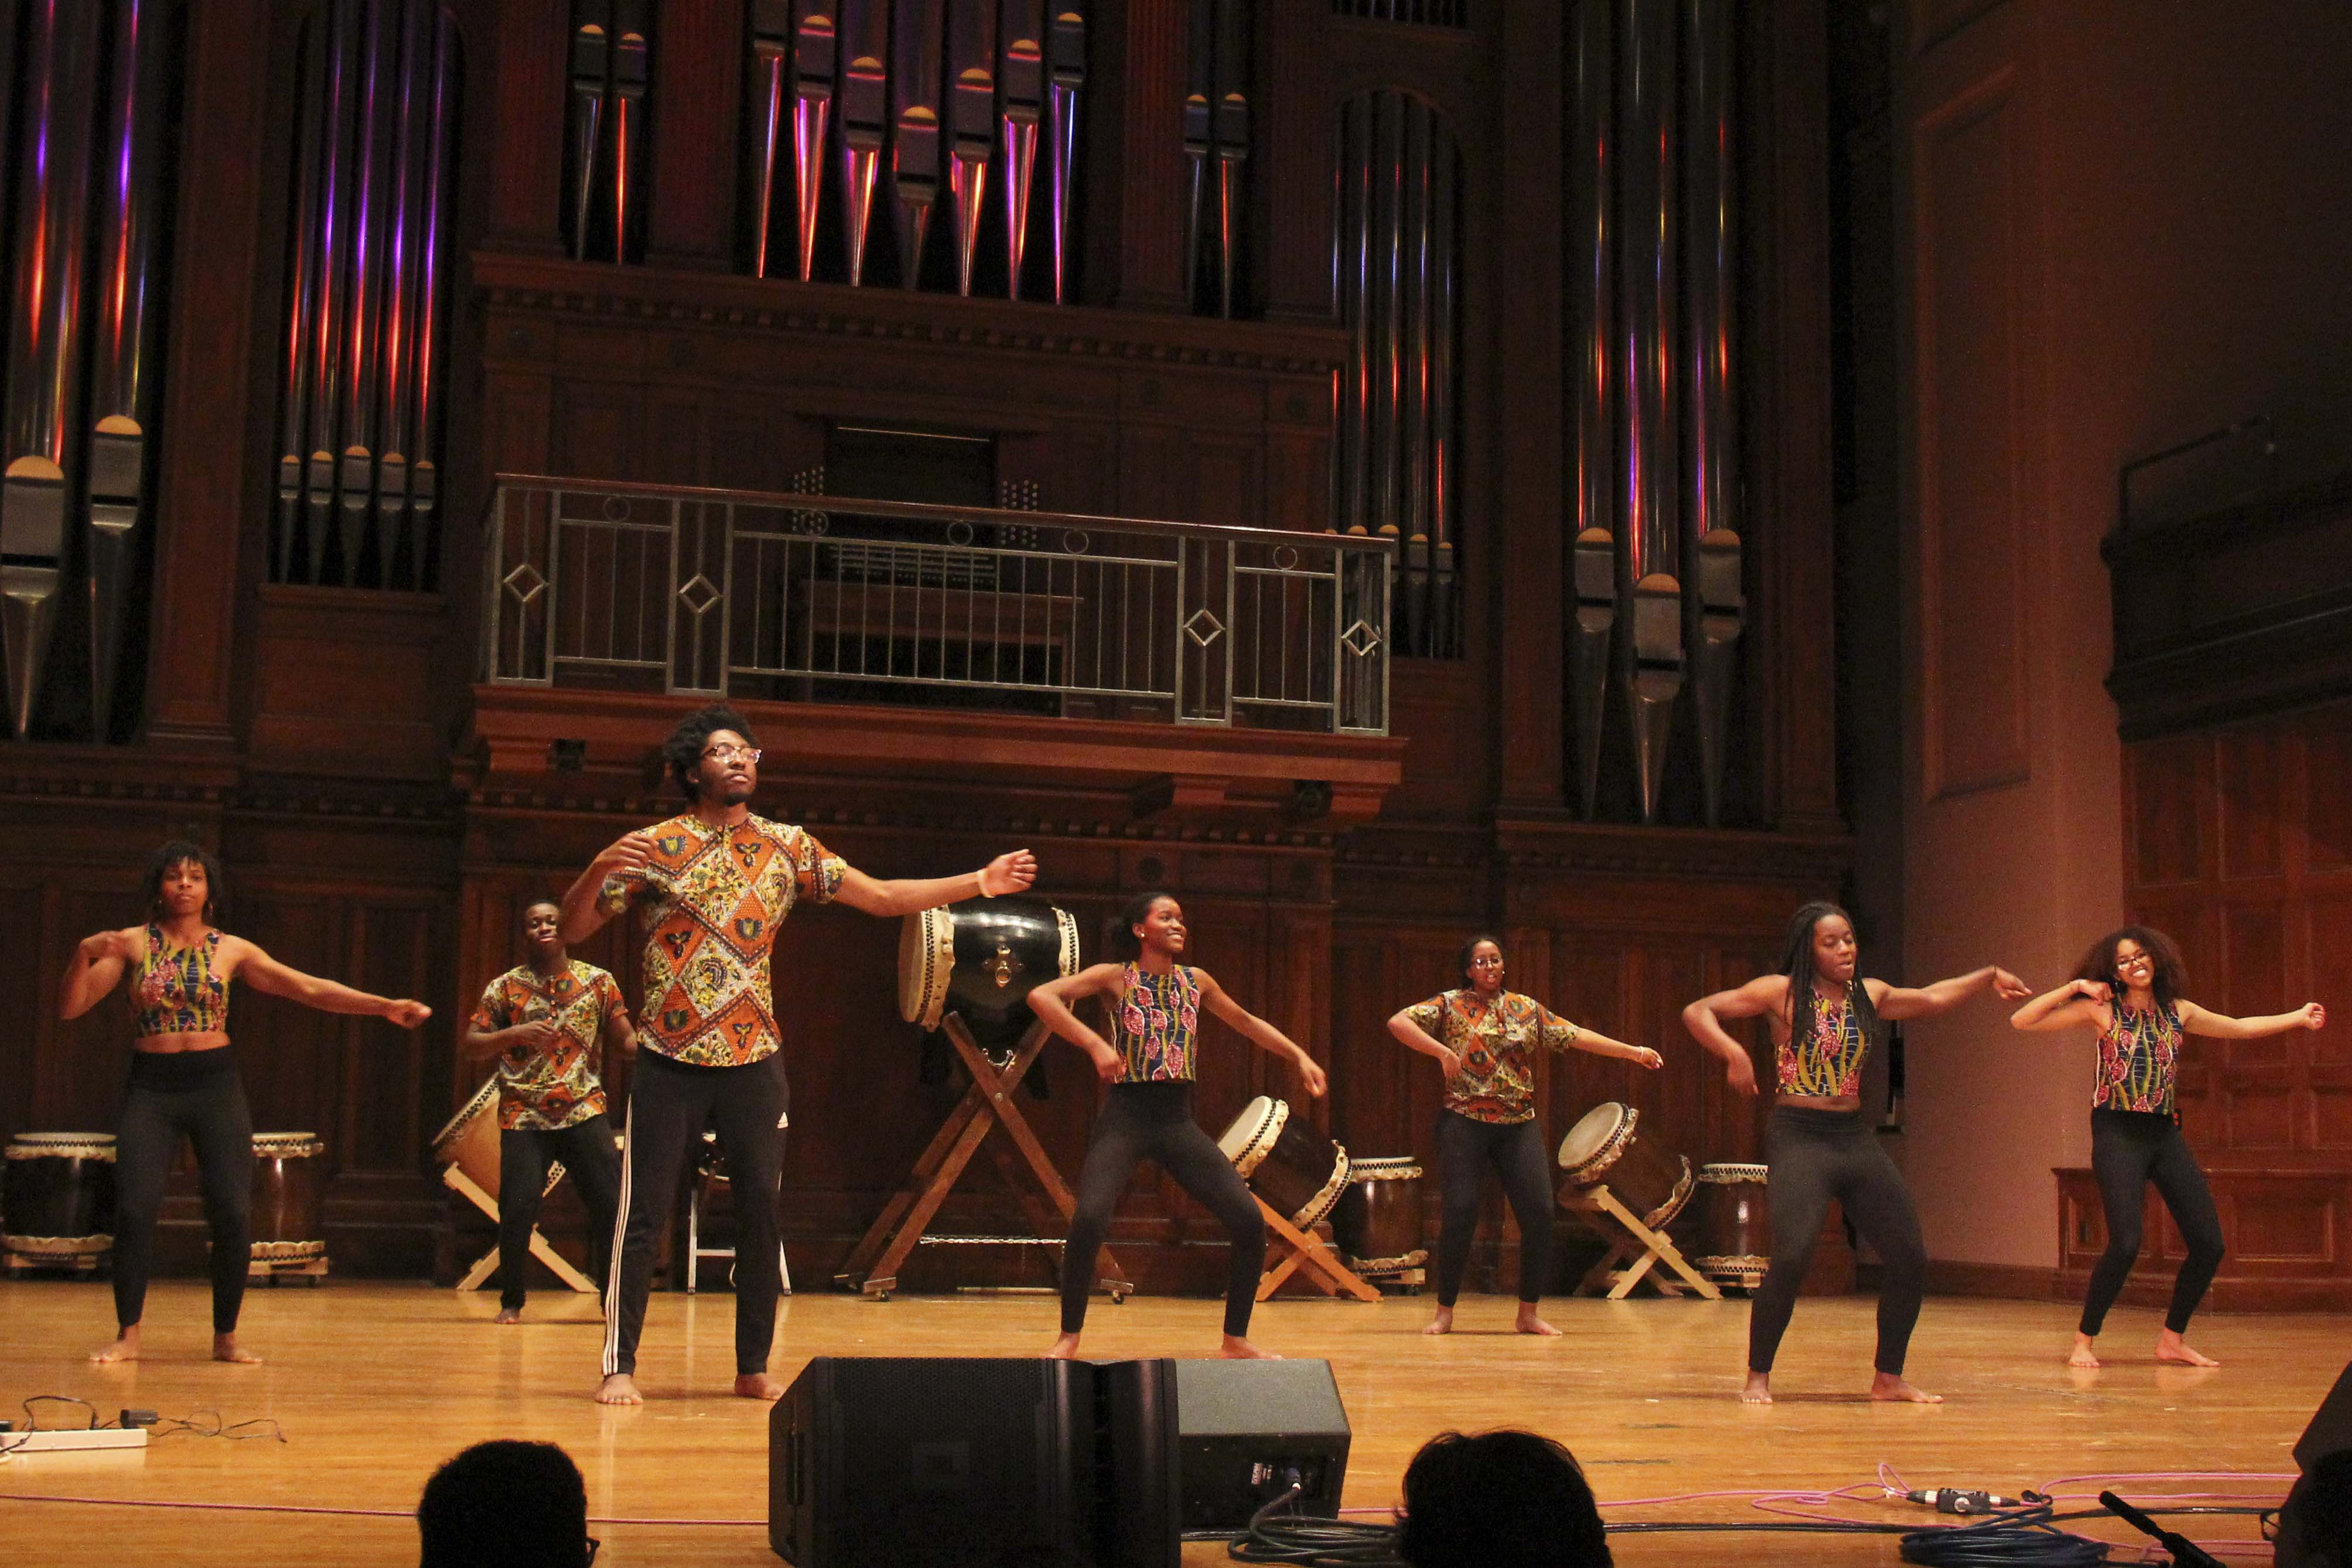 Students from ASA perform in Colors of Rhythm last Thursday, an annual showcase of artists and performers of color on campus organized by the Multicultural Resource Center.